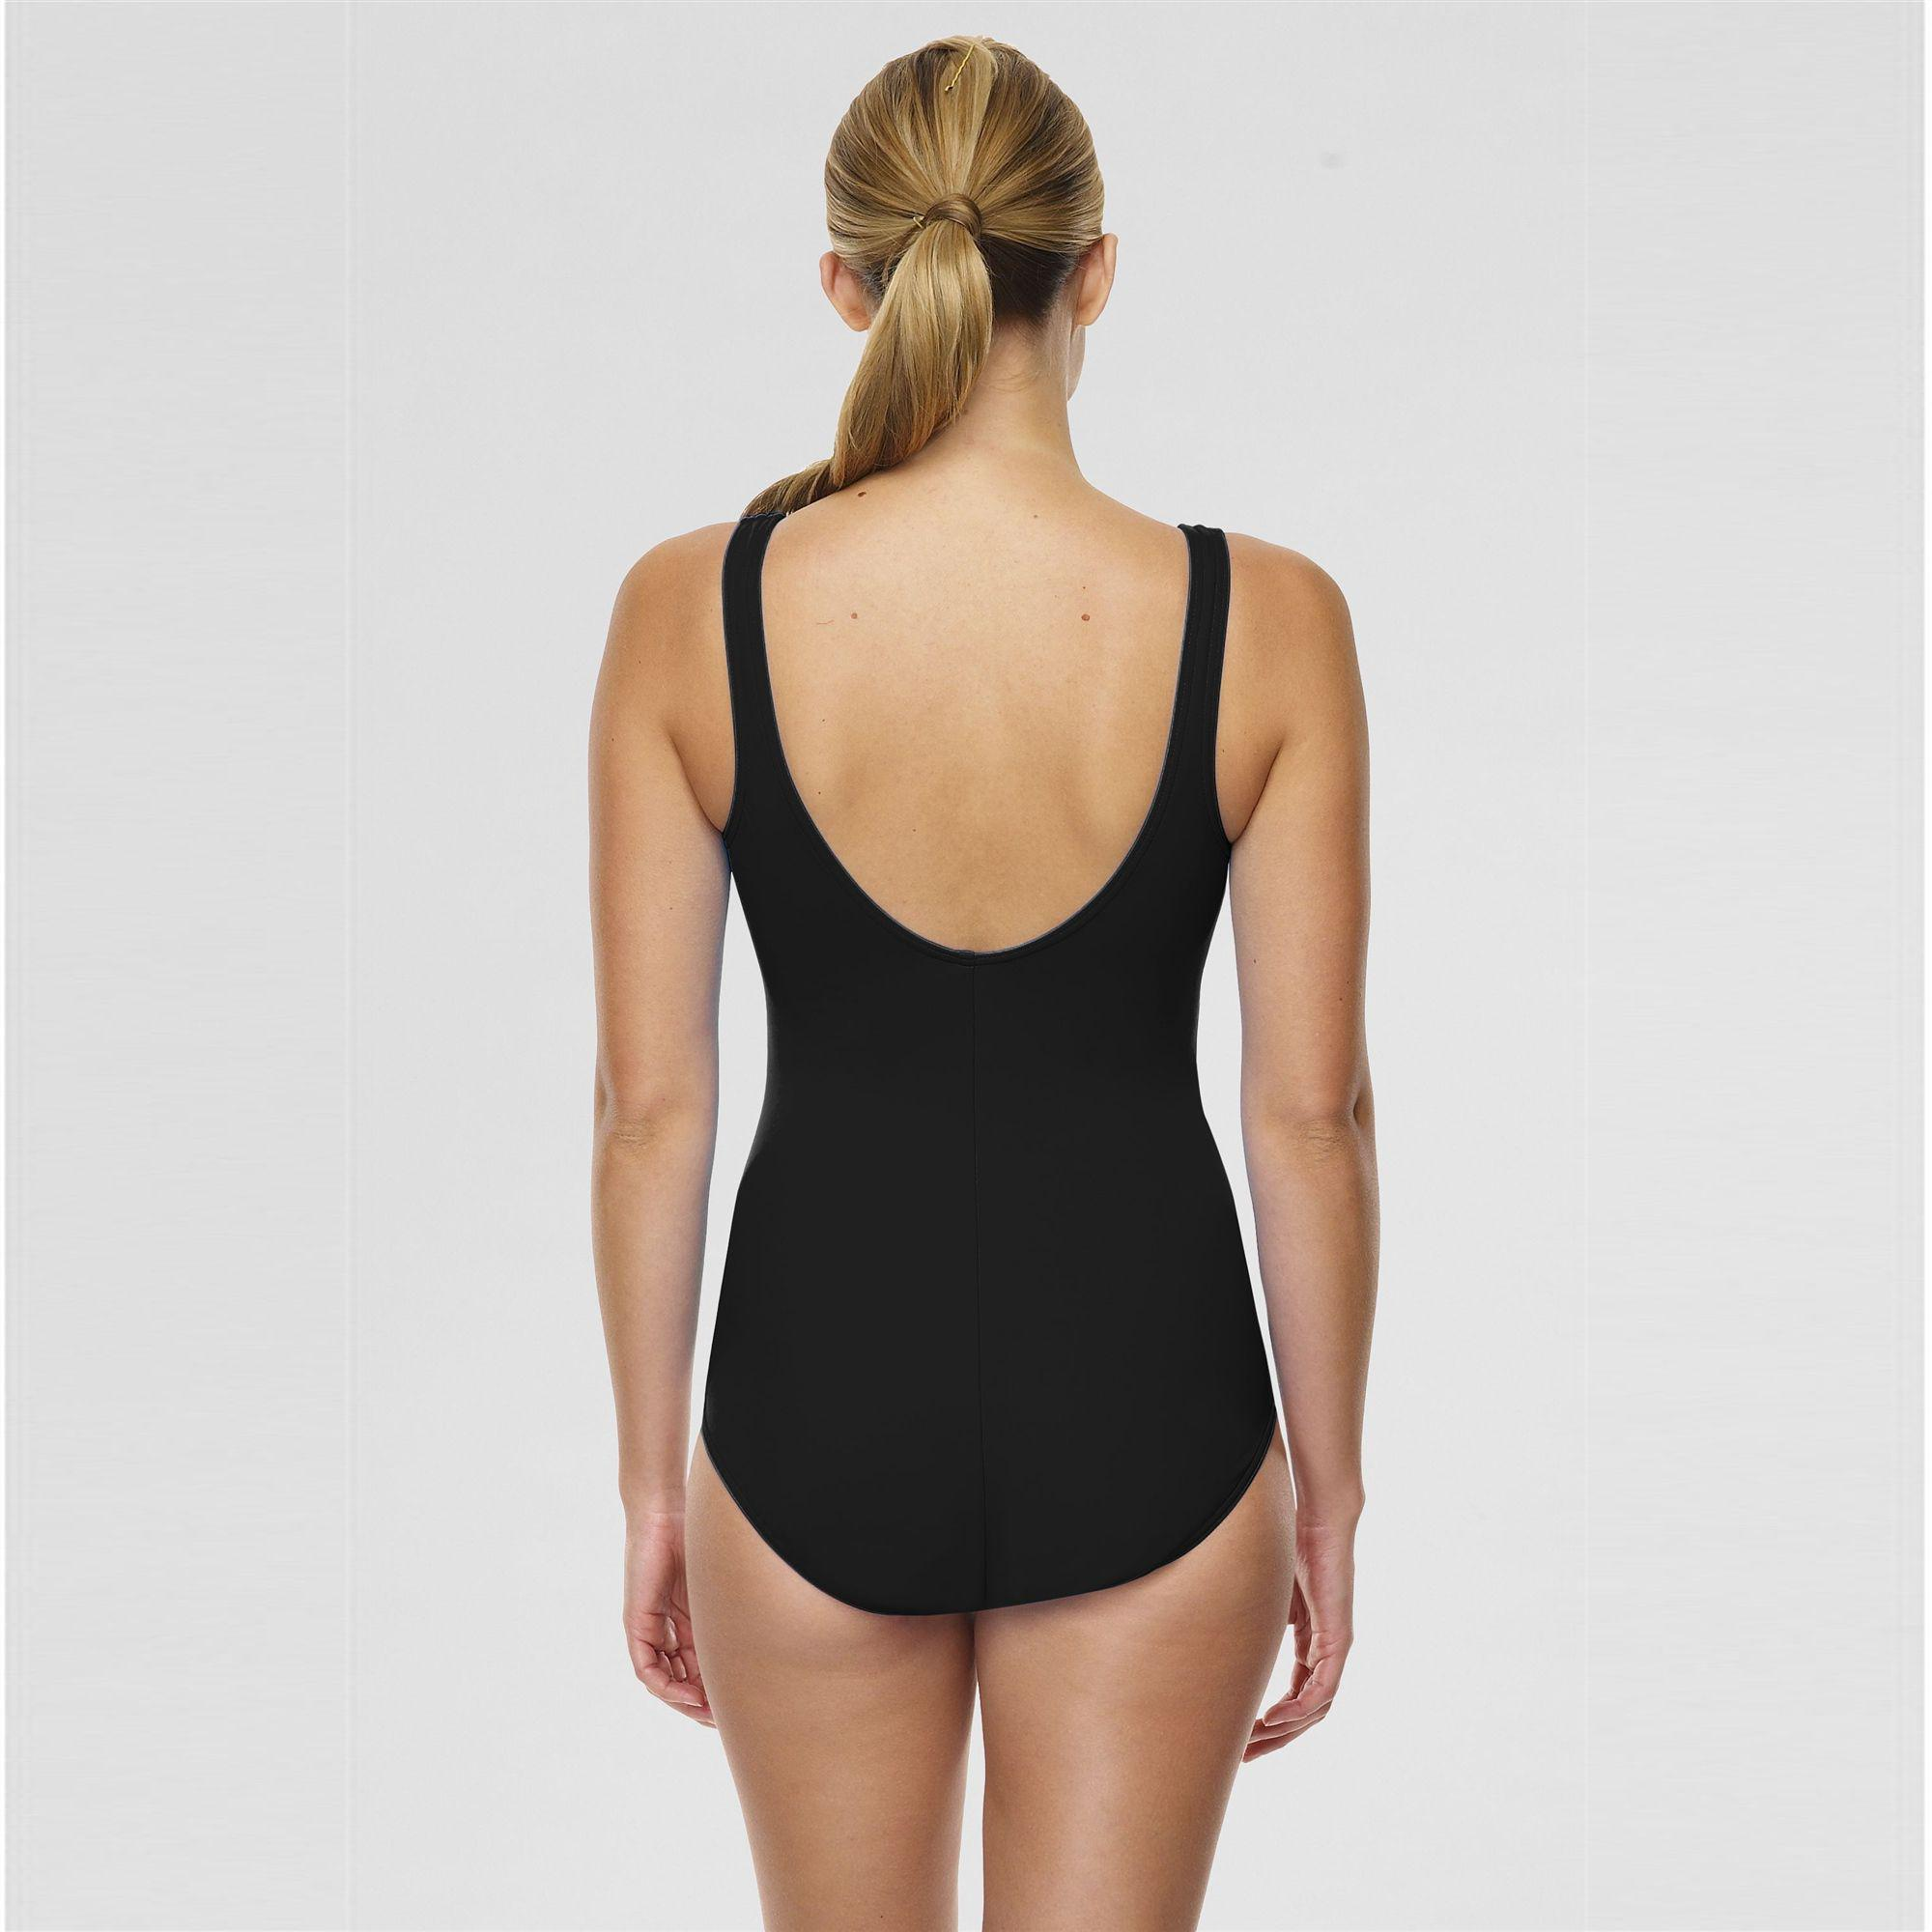 b3dc69f3309f0 Lands  End - Black Tugless Swimsuit With Soft Cup Bra - Lyst. View  fullscreen